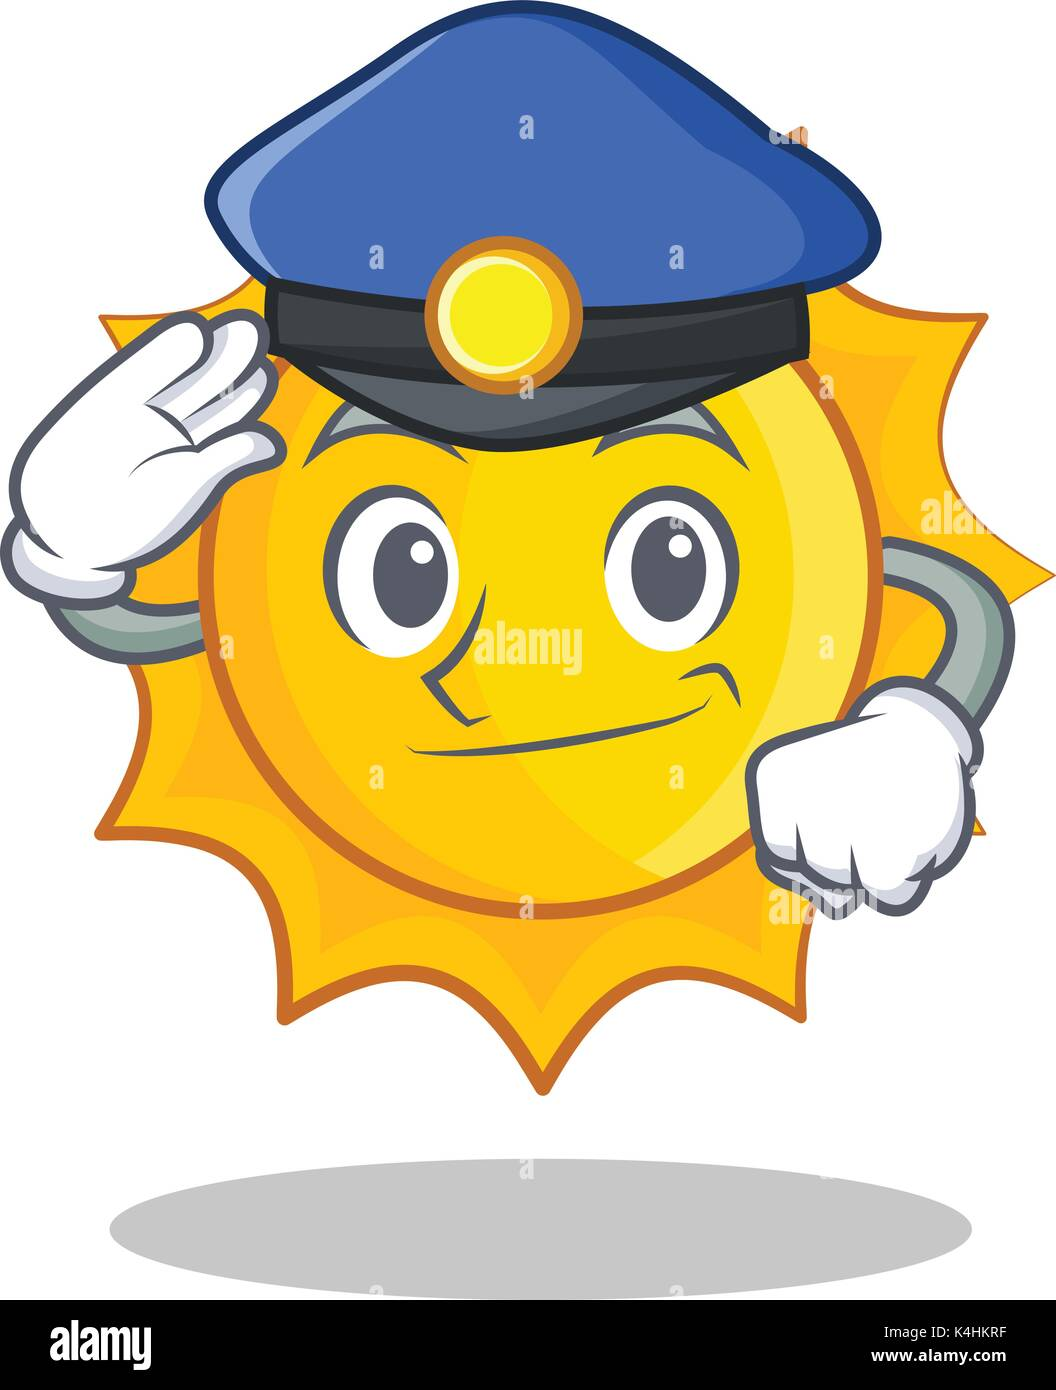 Police cute sun character cartoon - Stock Vector